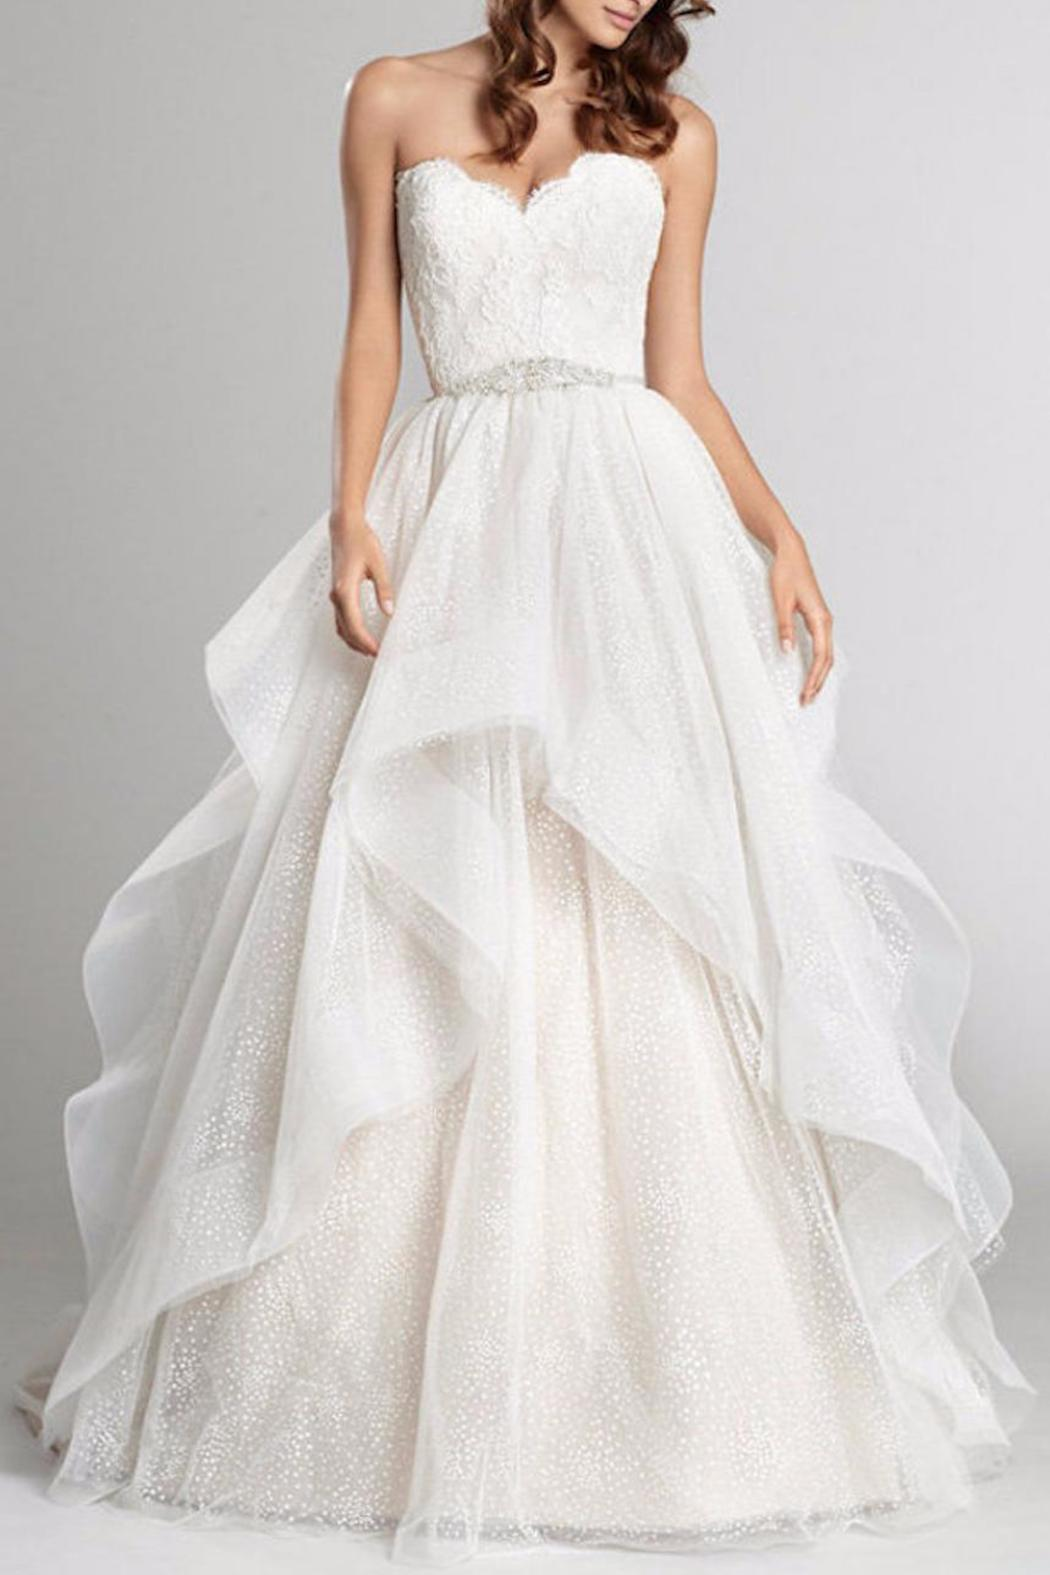 Alvina Valenta Horsehair Ball Gown From Texas By Beatitude Bridal